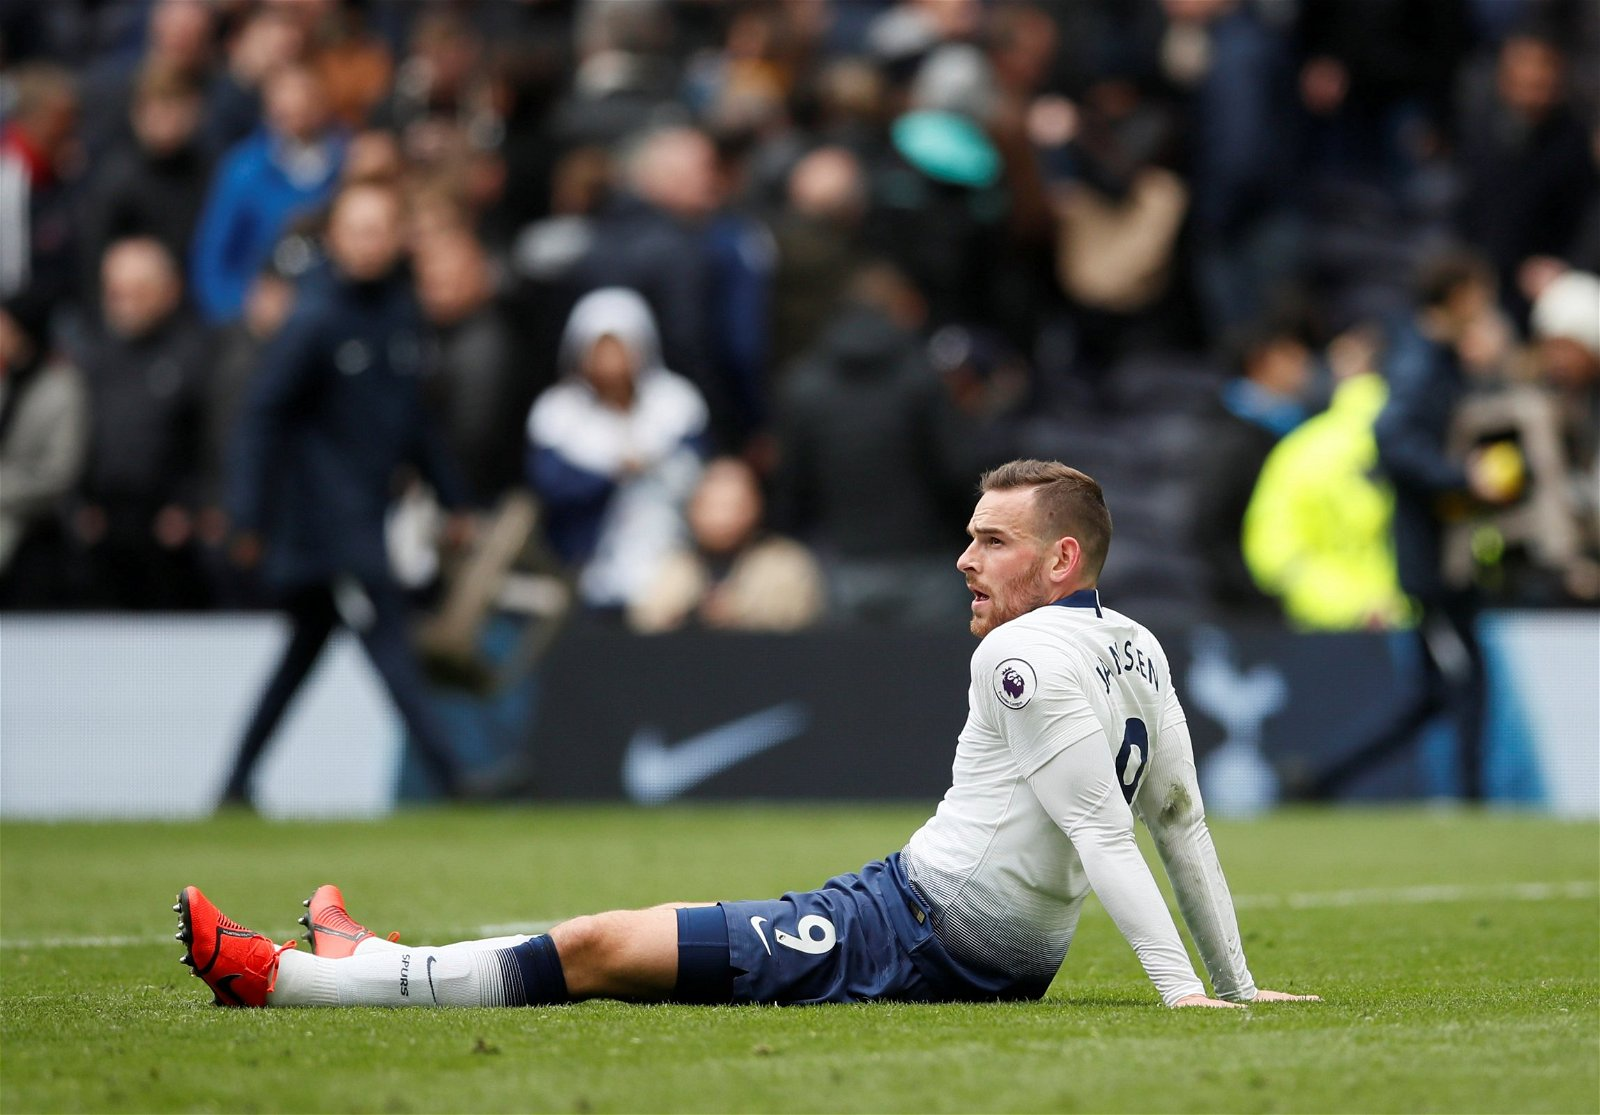 Tottenhams Vincent Janssen reacts after the match - Cost £17m, sold for £6m: Spurs' financial loss Levy's price to pay for Poch blunder – opinion